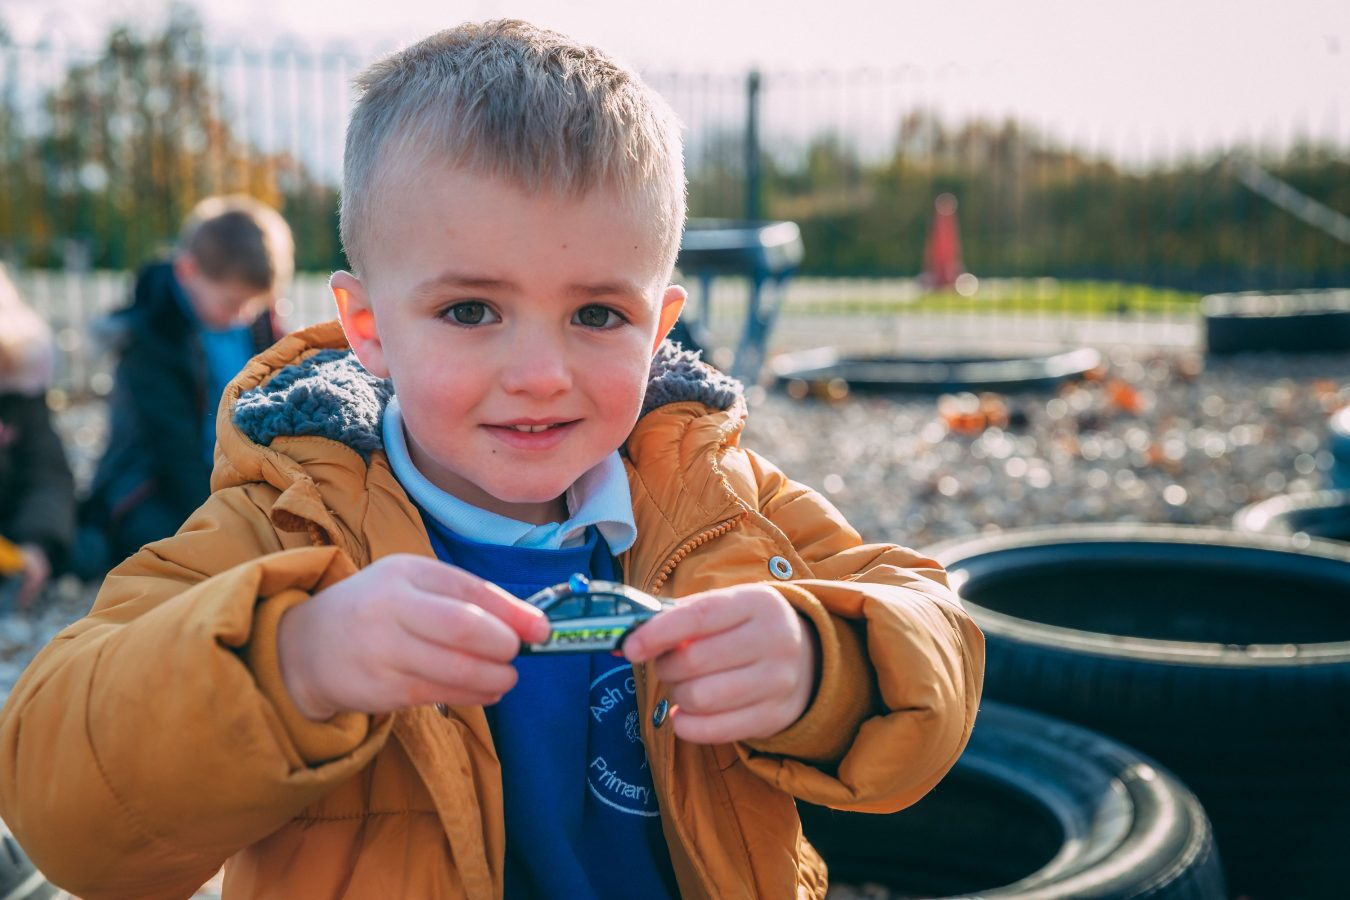 EYFS Vision September 20 featured image